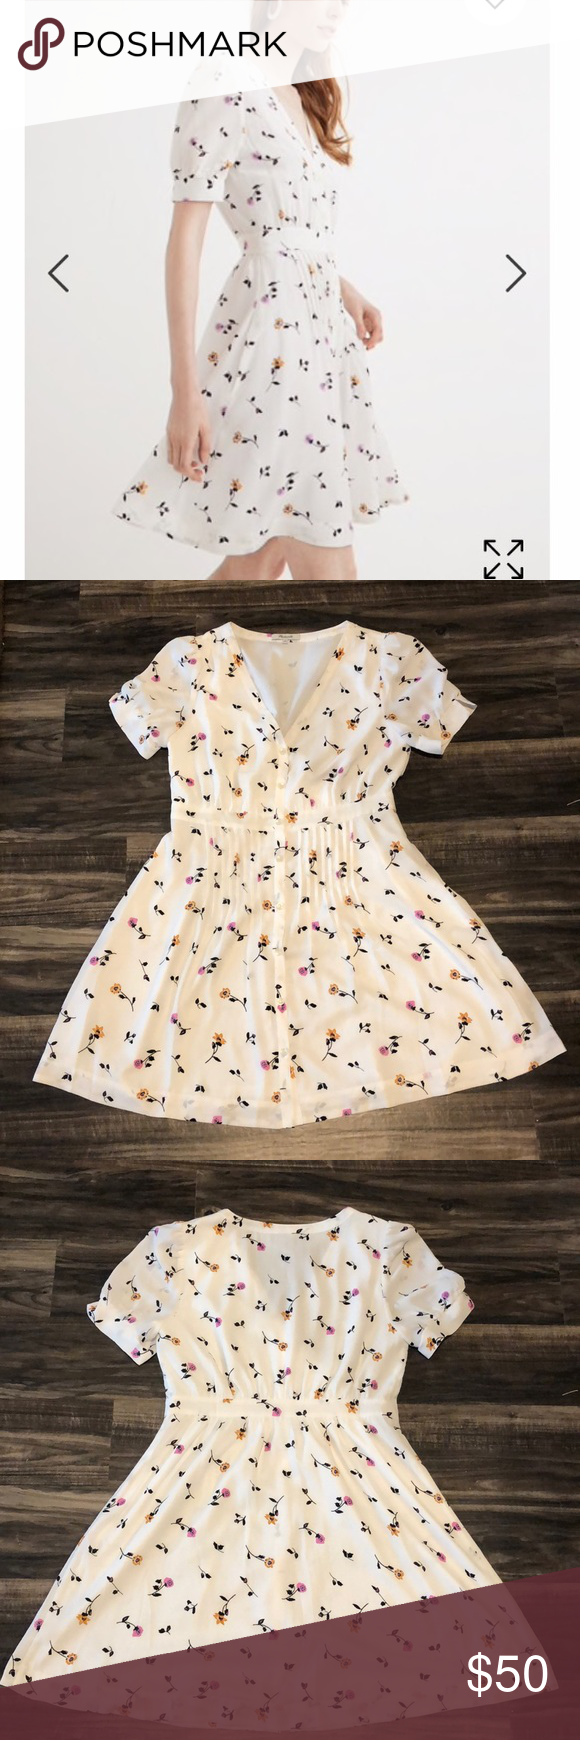 c1420f2ed28 Madewell Daylily Pintuck Dress in Sweet Blossoms Breezy dress with retro  vibes. Such a cute